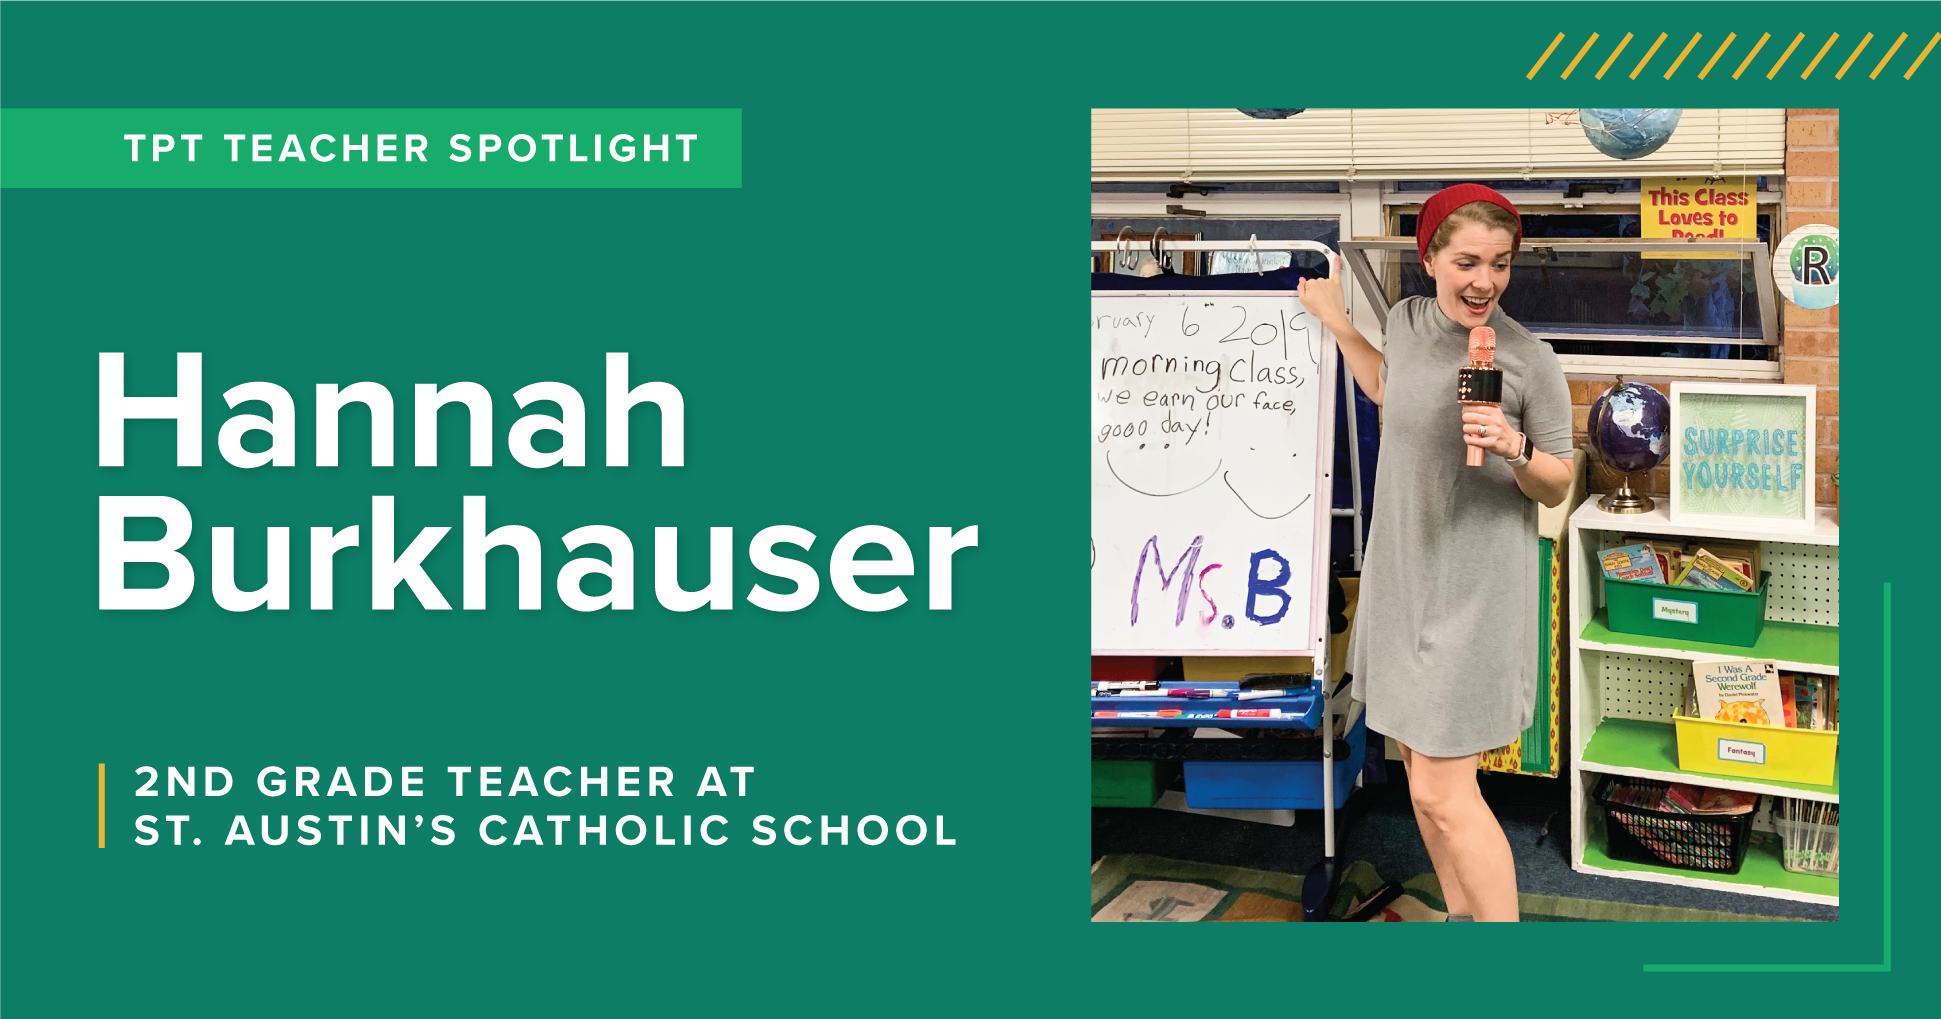 A TpT Teacher Spotlight on Hannah Burkhauser, a 2nd grade teacher at St. Austin's Catholic School.